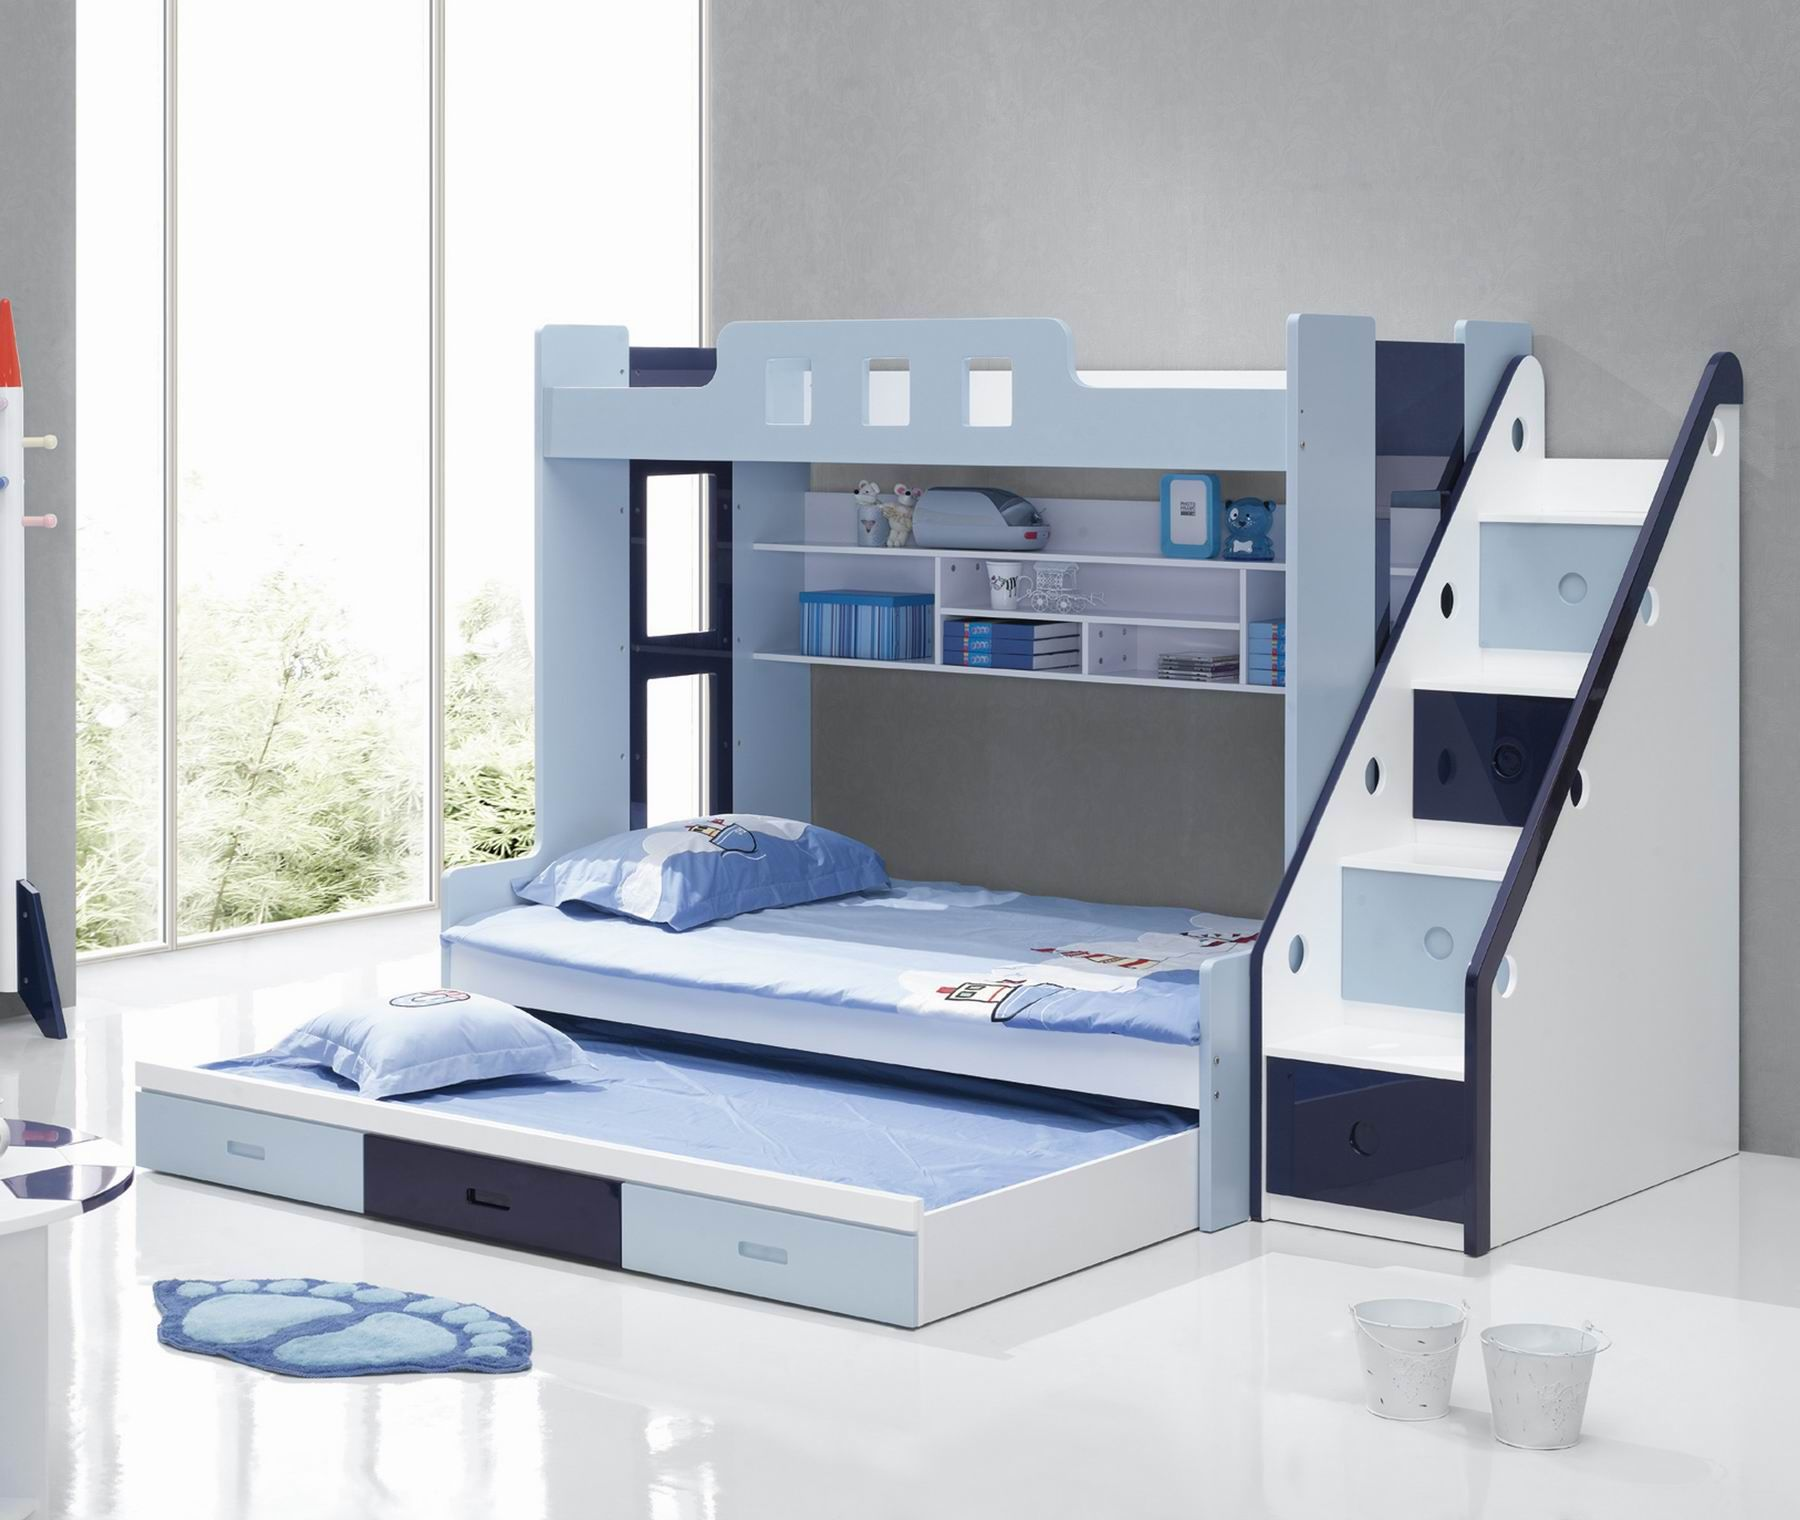 Modern Kids Bedrooms Kid Bedroom Modern Design Bunk Beds For Kids Bunk Bed Zane